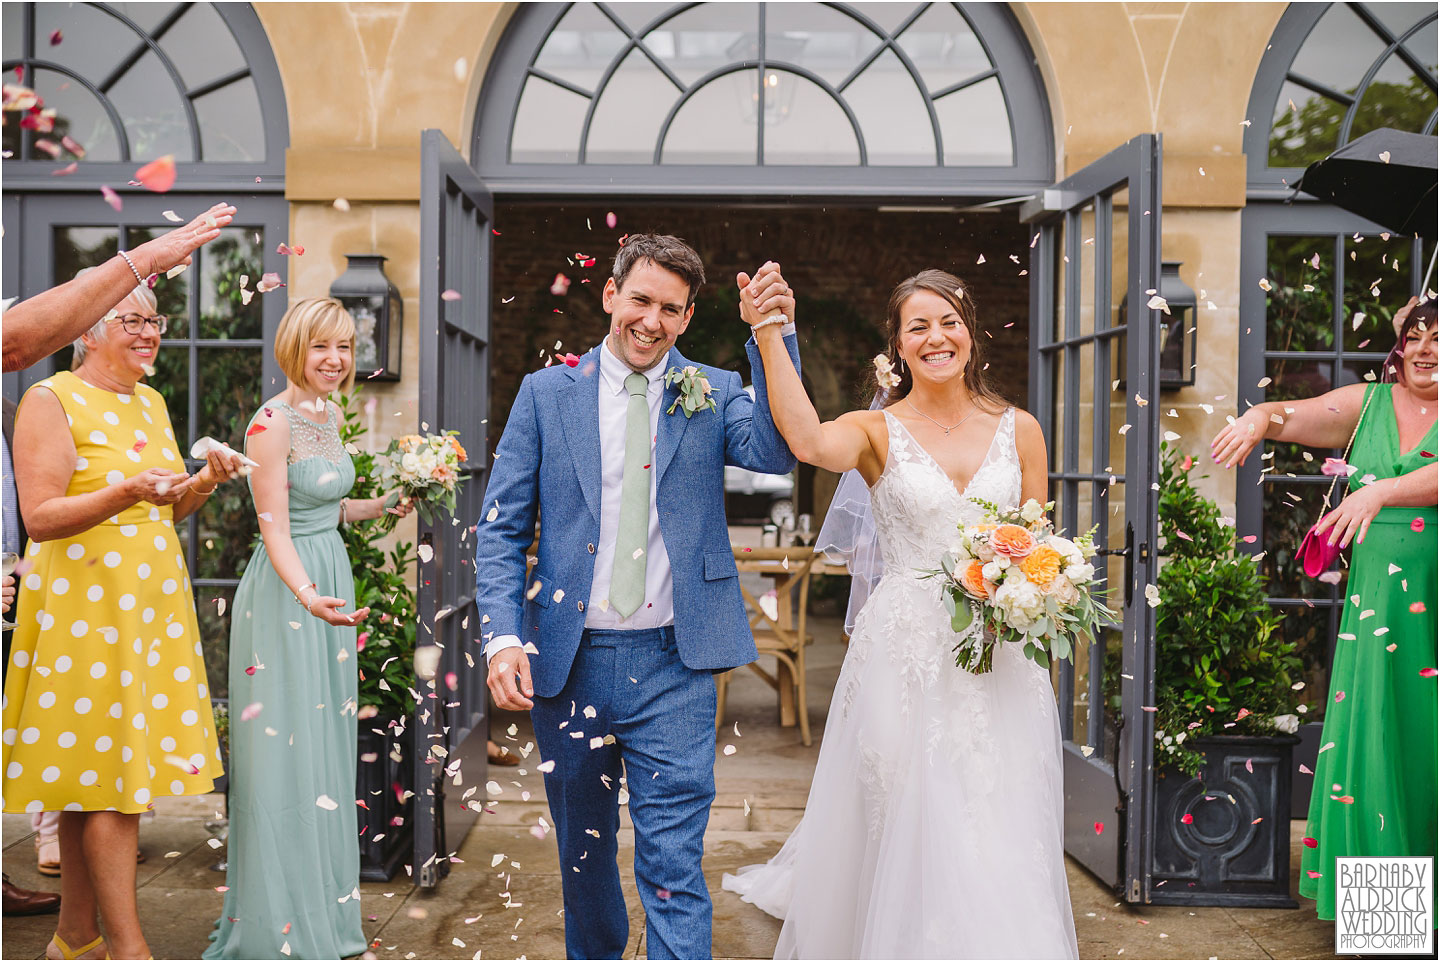 Confetti at the Fig House Walled Garden at Middleton Lodge, Fig House Walled Garden Middleton Lodge Wedding Photos, Fig House Middleton Lodge Richmond, Middleton Lodge wedding photographer, Middleton Lodge Wedding Photography, Yorkshire Wedding Photographer Barnaby Aldrick